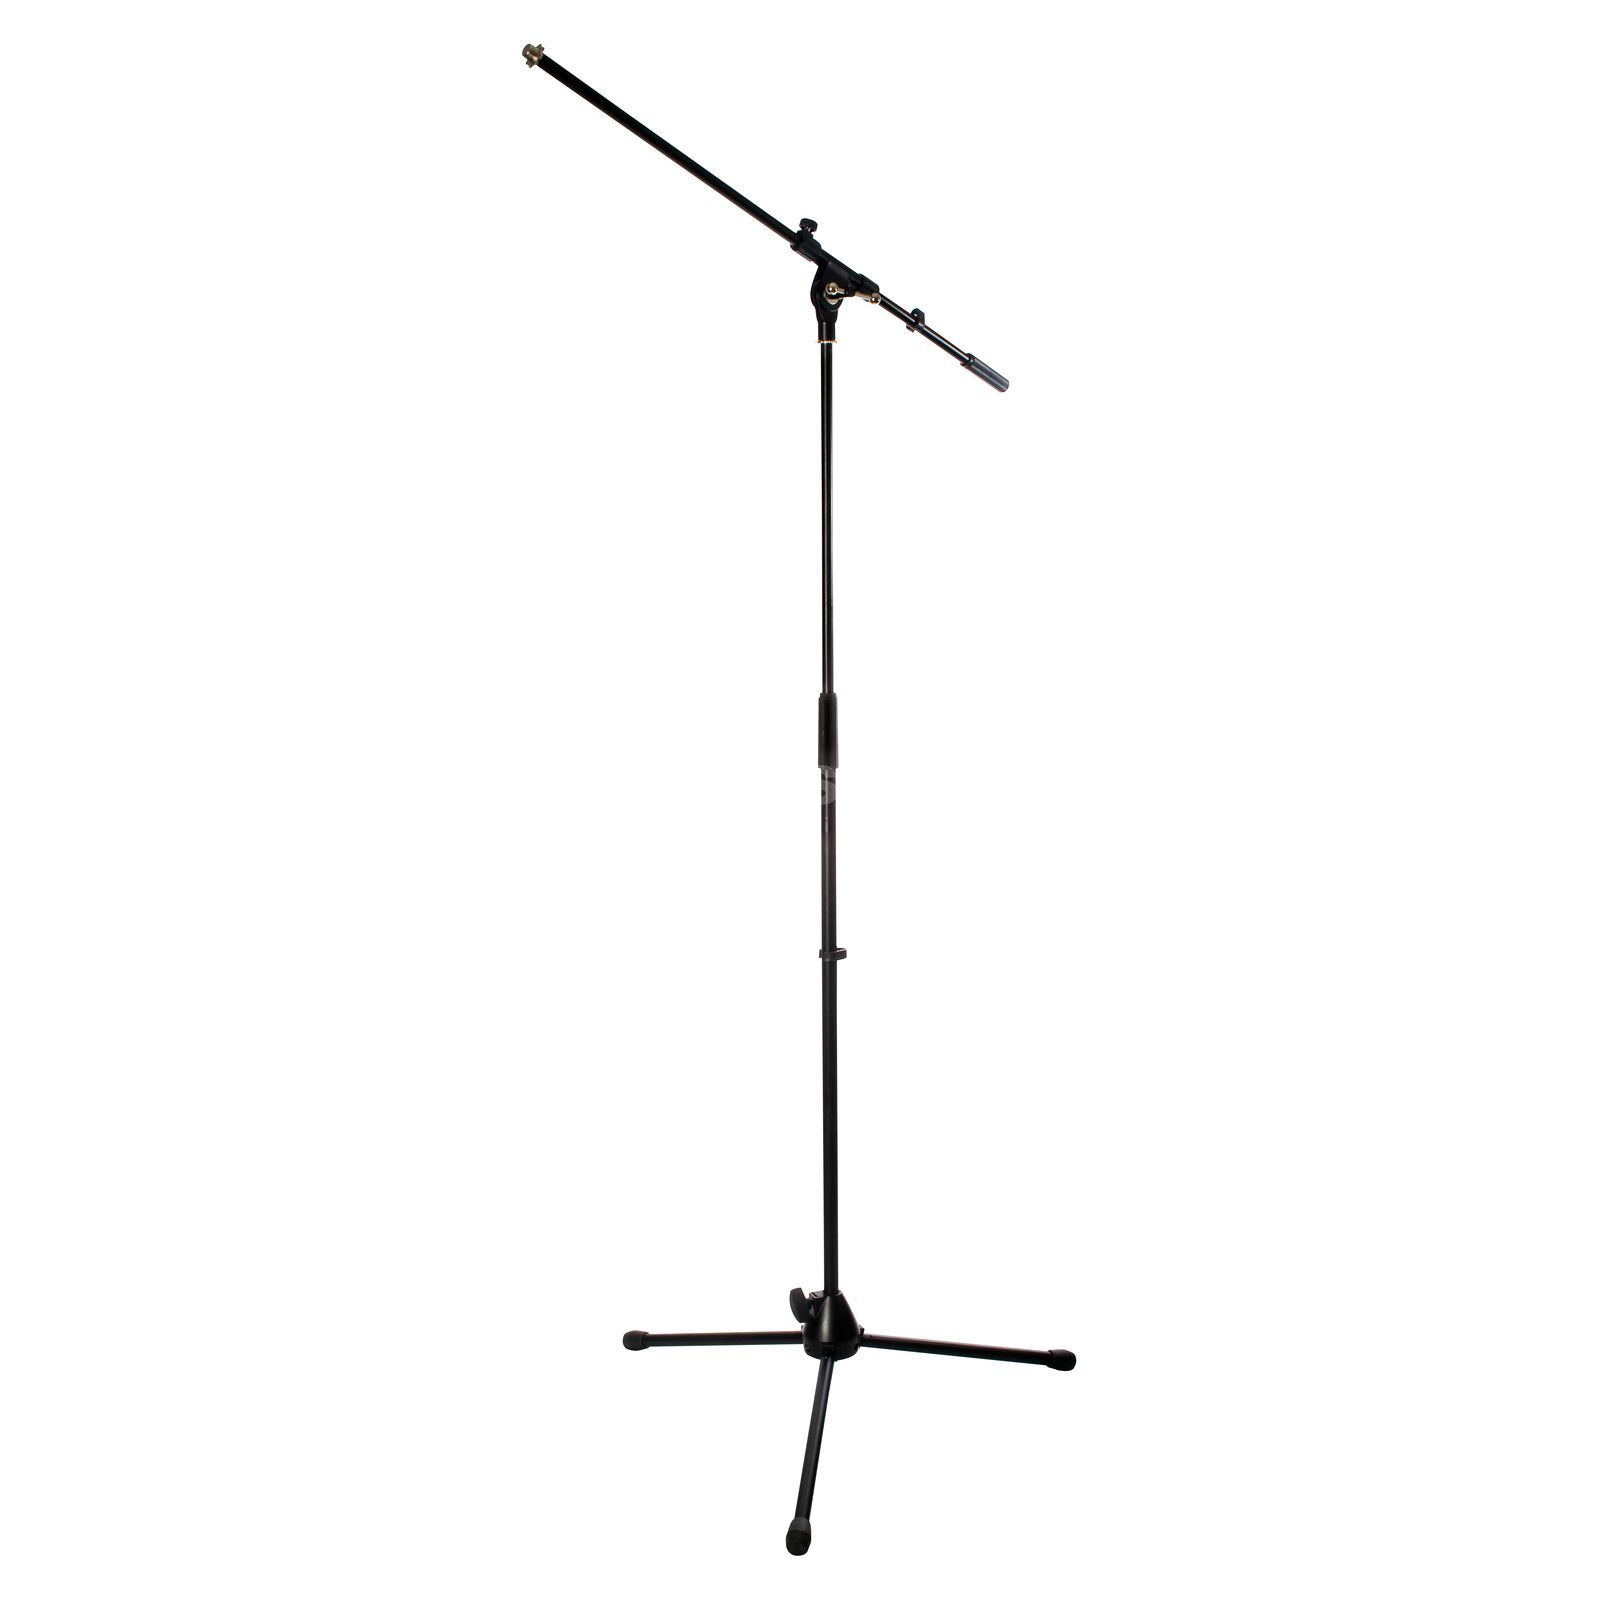 MUSIC STORE MIC 5, Microphone Stand black standard Produktbillede